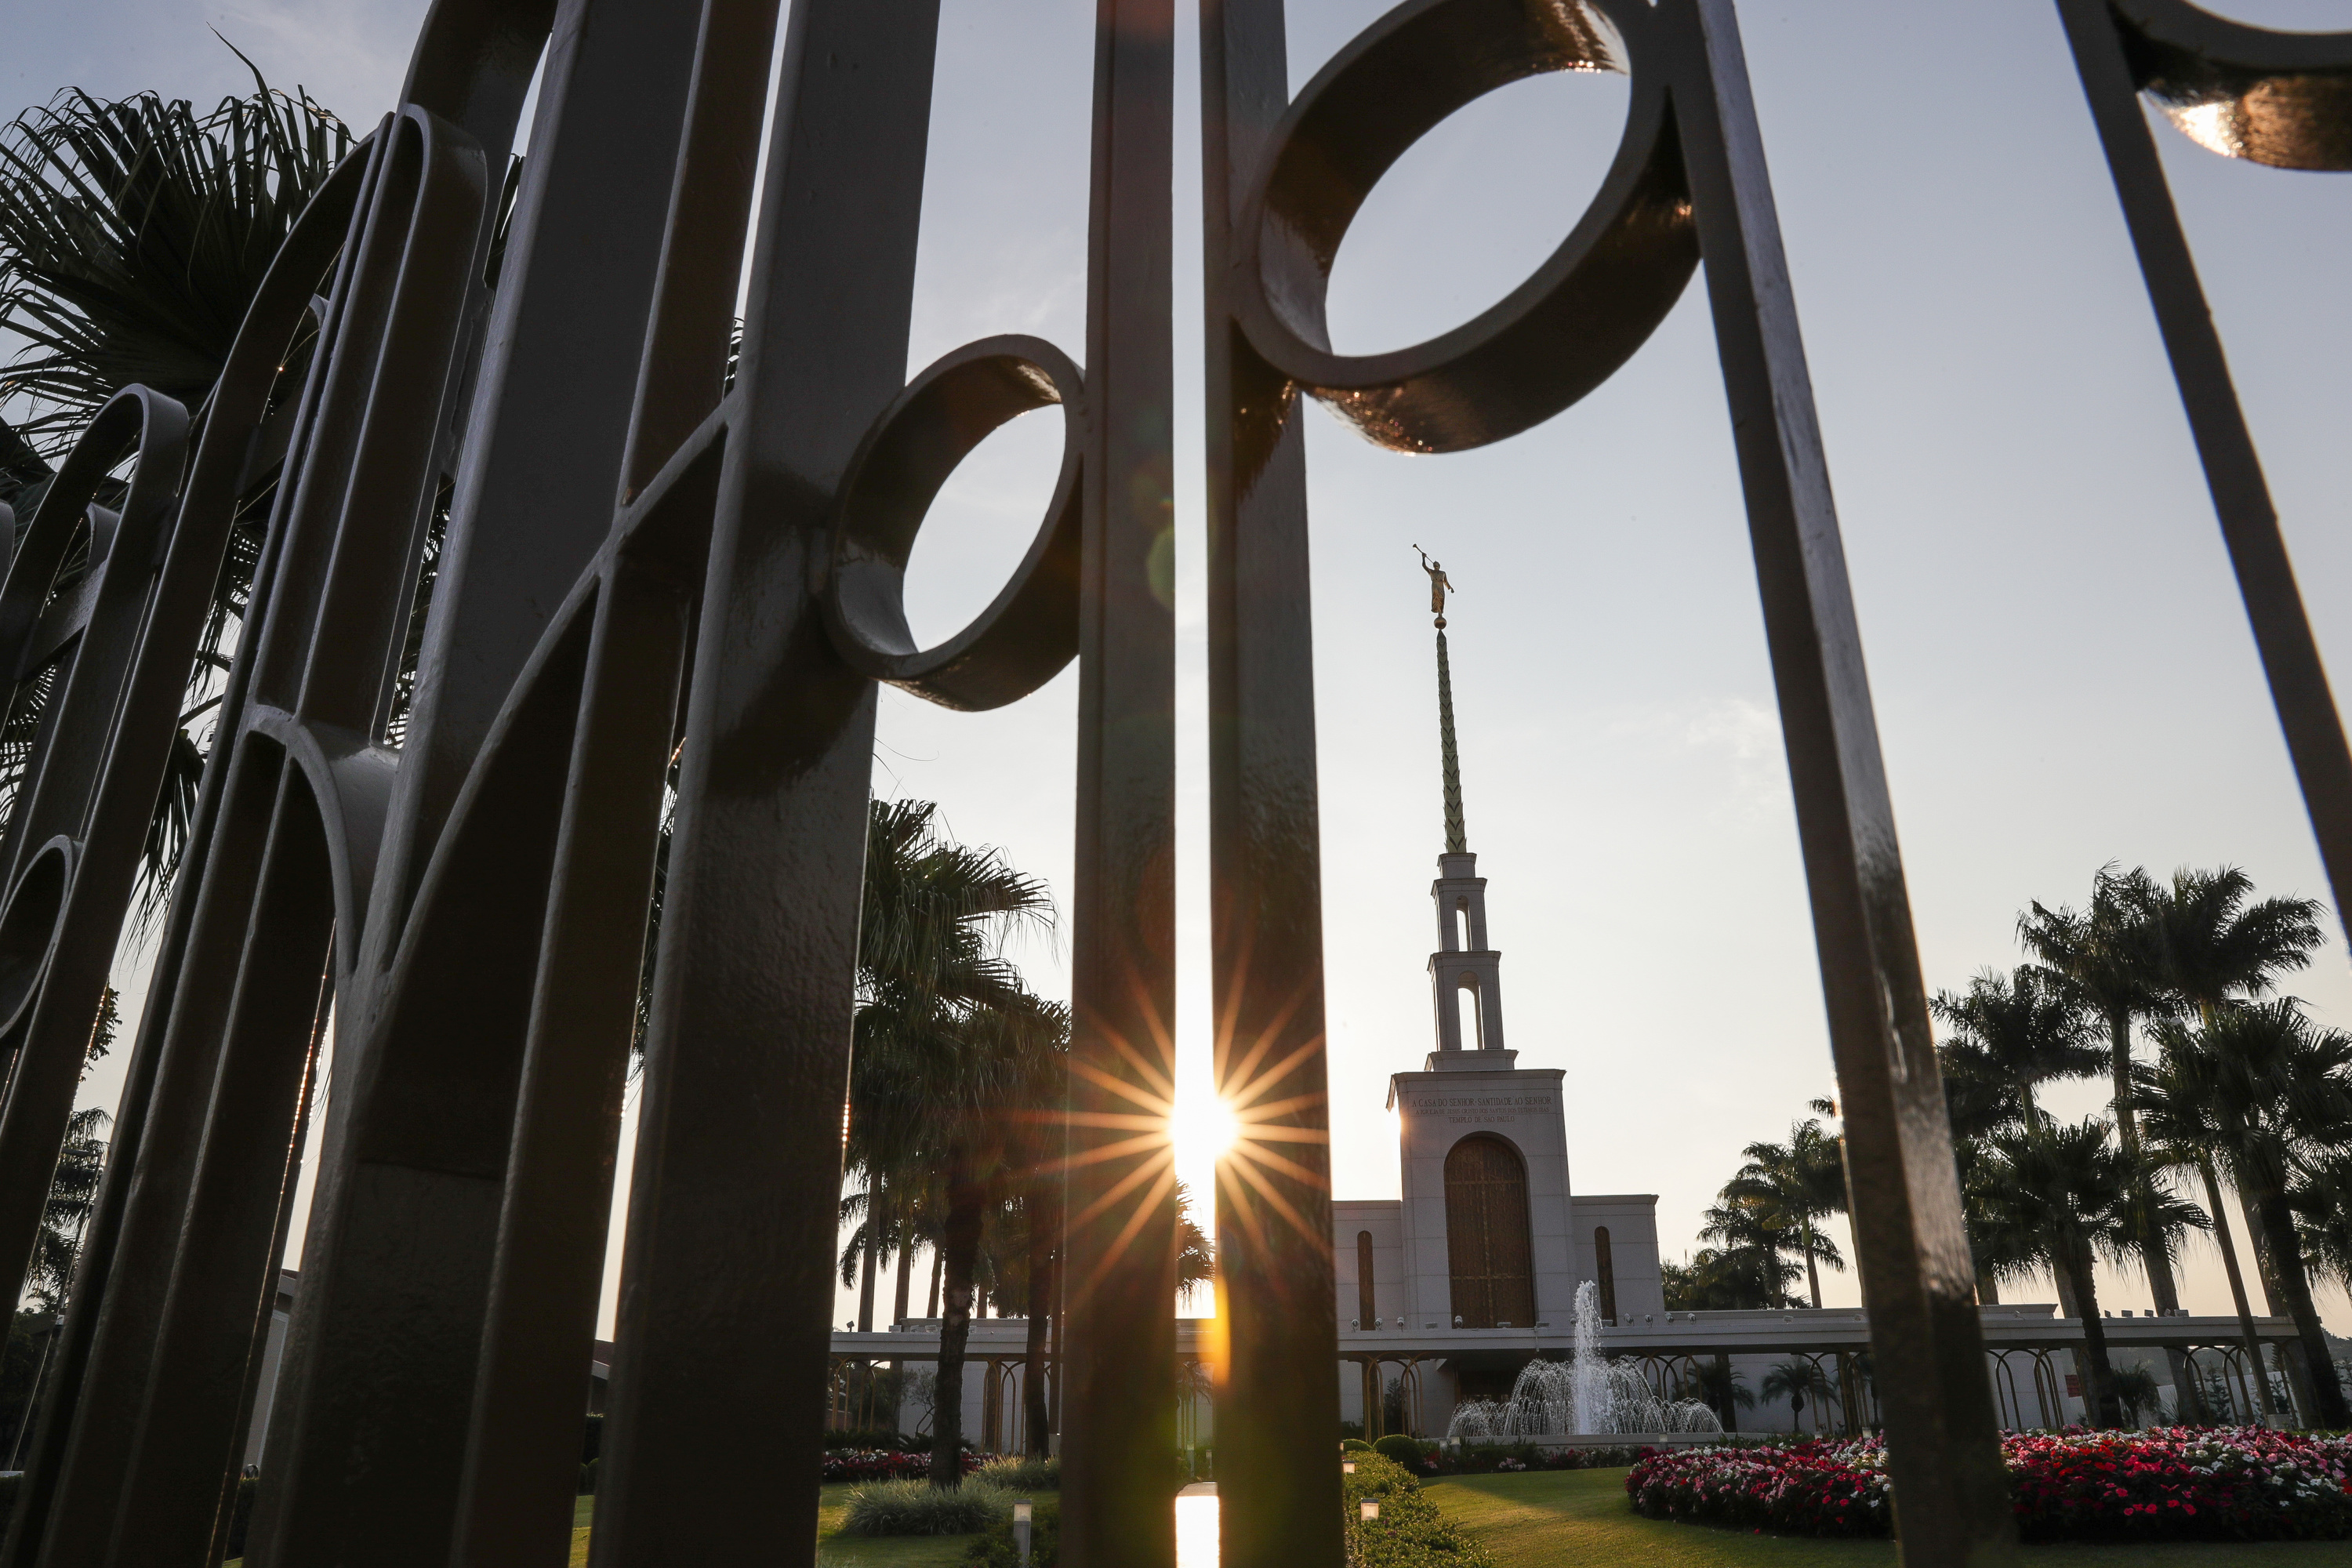 The LDS Church's São Paulo Temple is seen at sunset in São Paulo, Brazil on Wednesday, May 23, 2018.